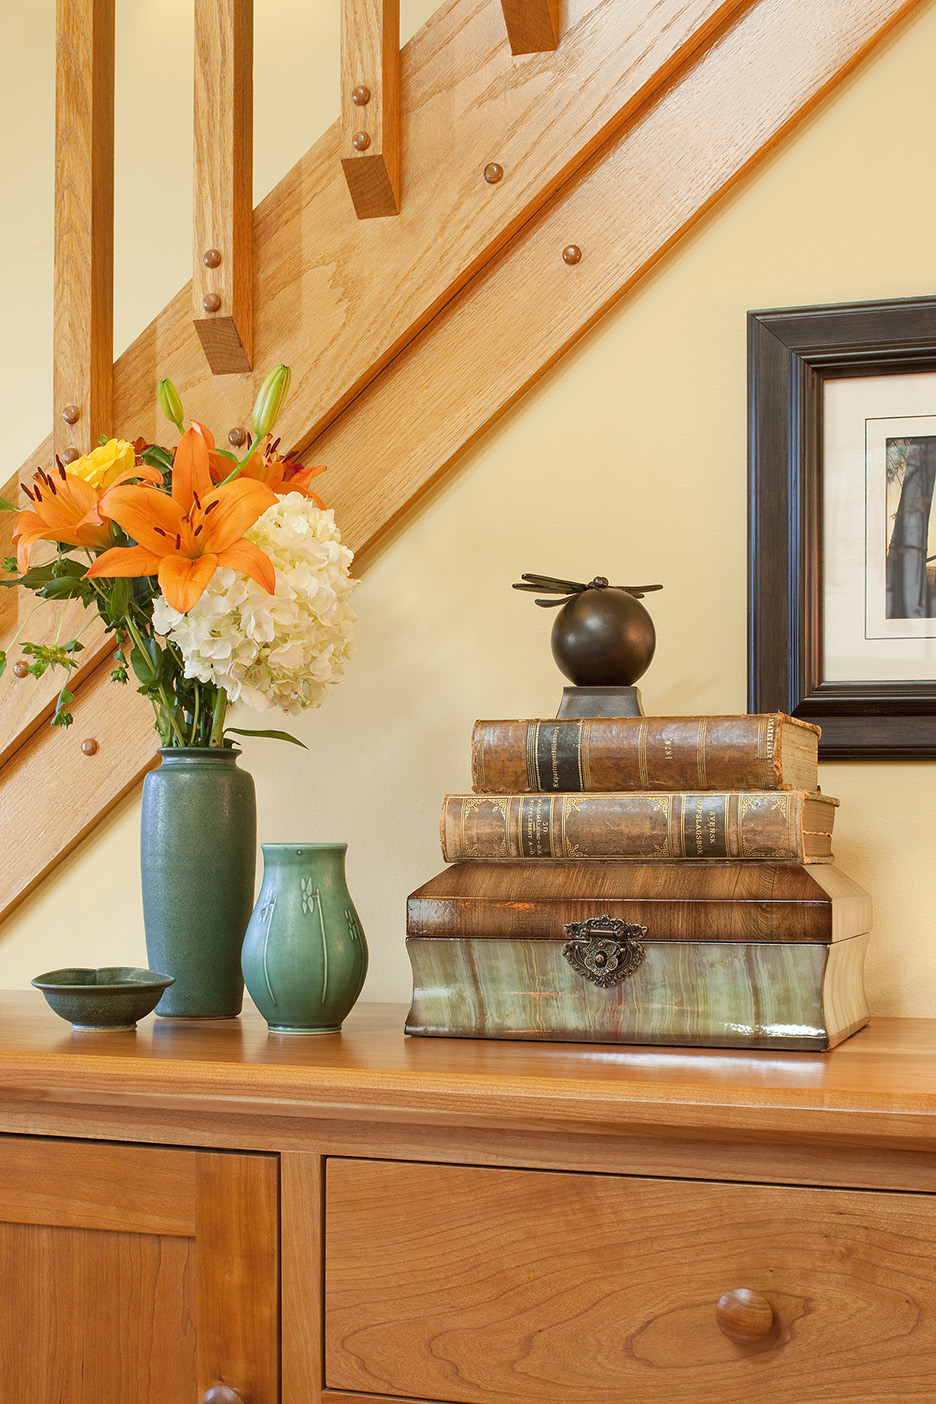 Arts and Crafts Home - Boston Design and Interiors, Inc.